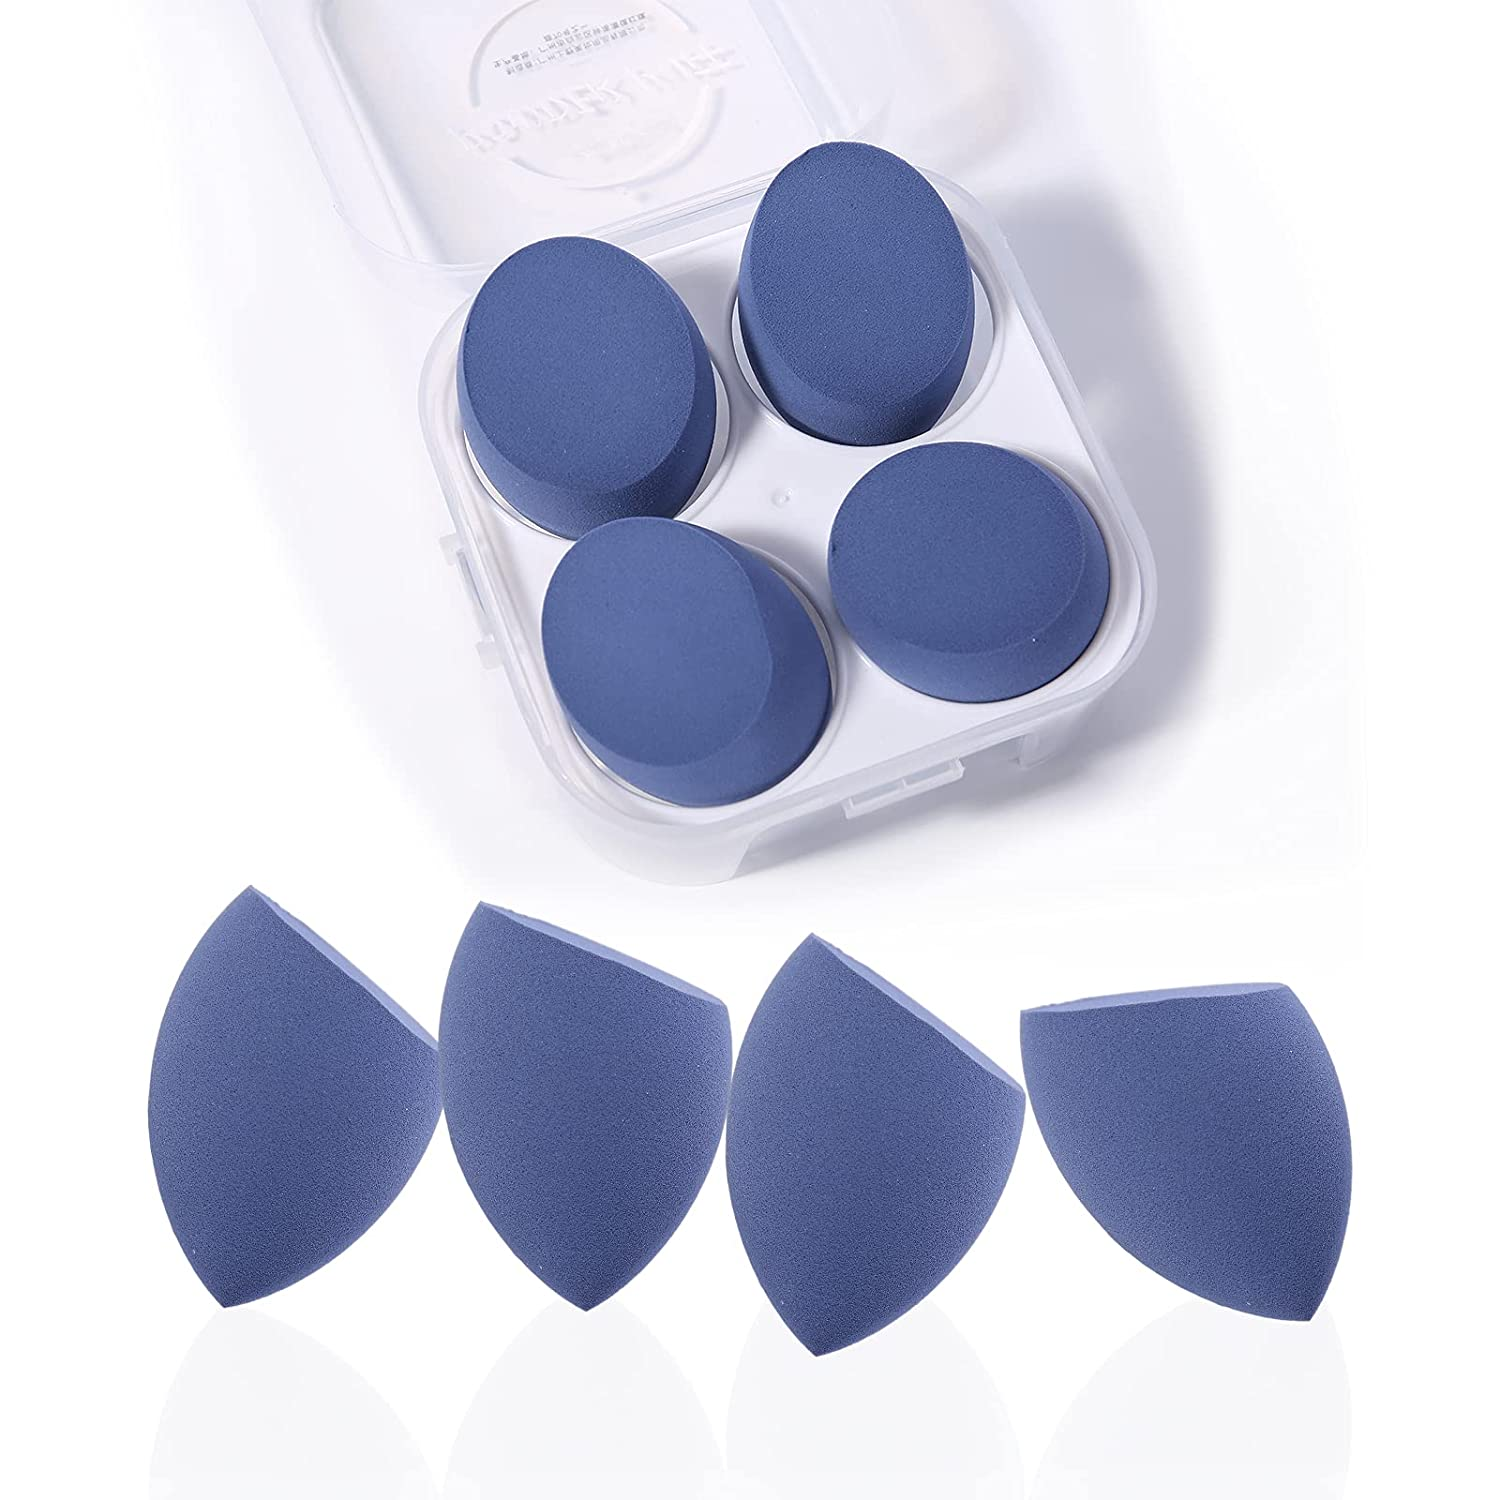 Makeup Sponges Beauty Blender Set 4 Pieces All Wedges&Flat-Sided Blenders for Makeup Foundation, Latex-Free No Smell Dry & Wet Use Case Packed